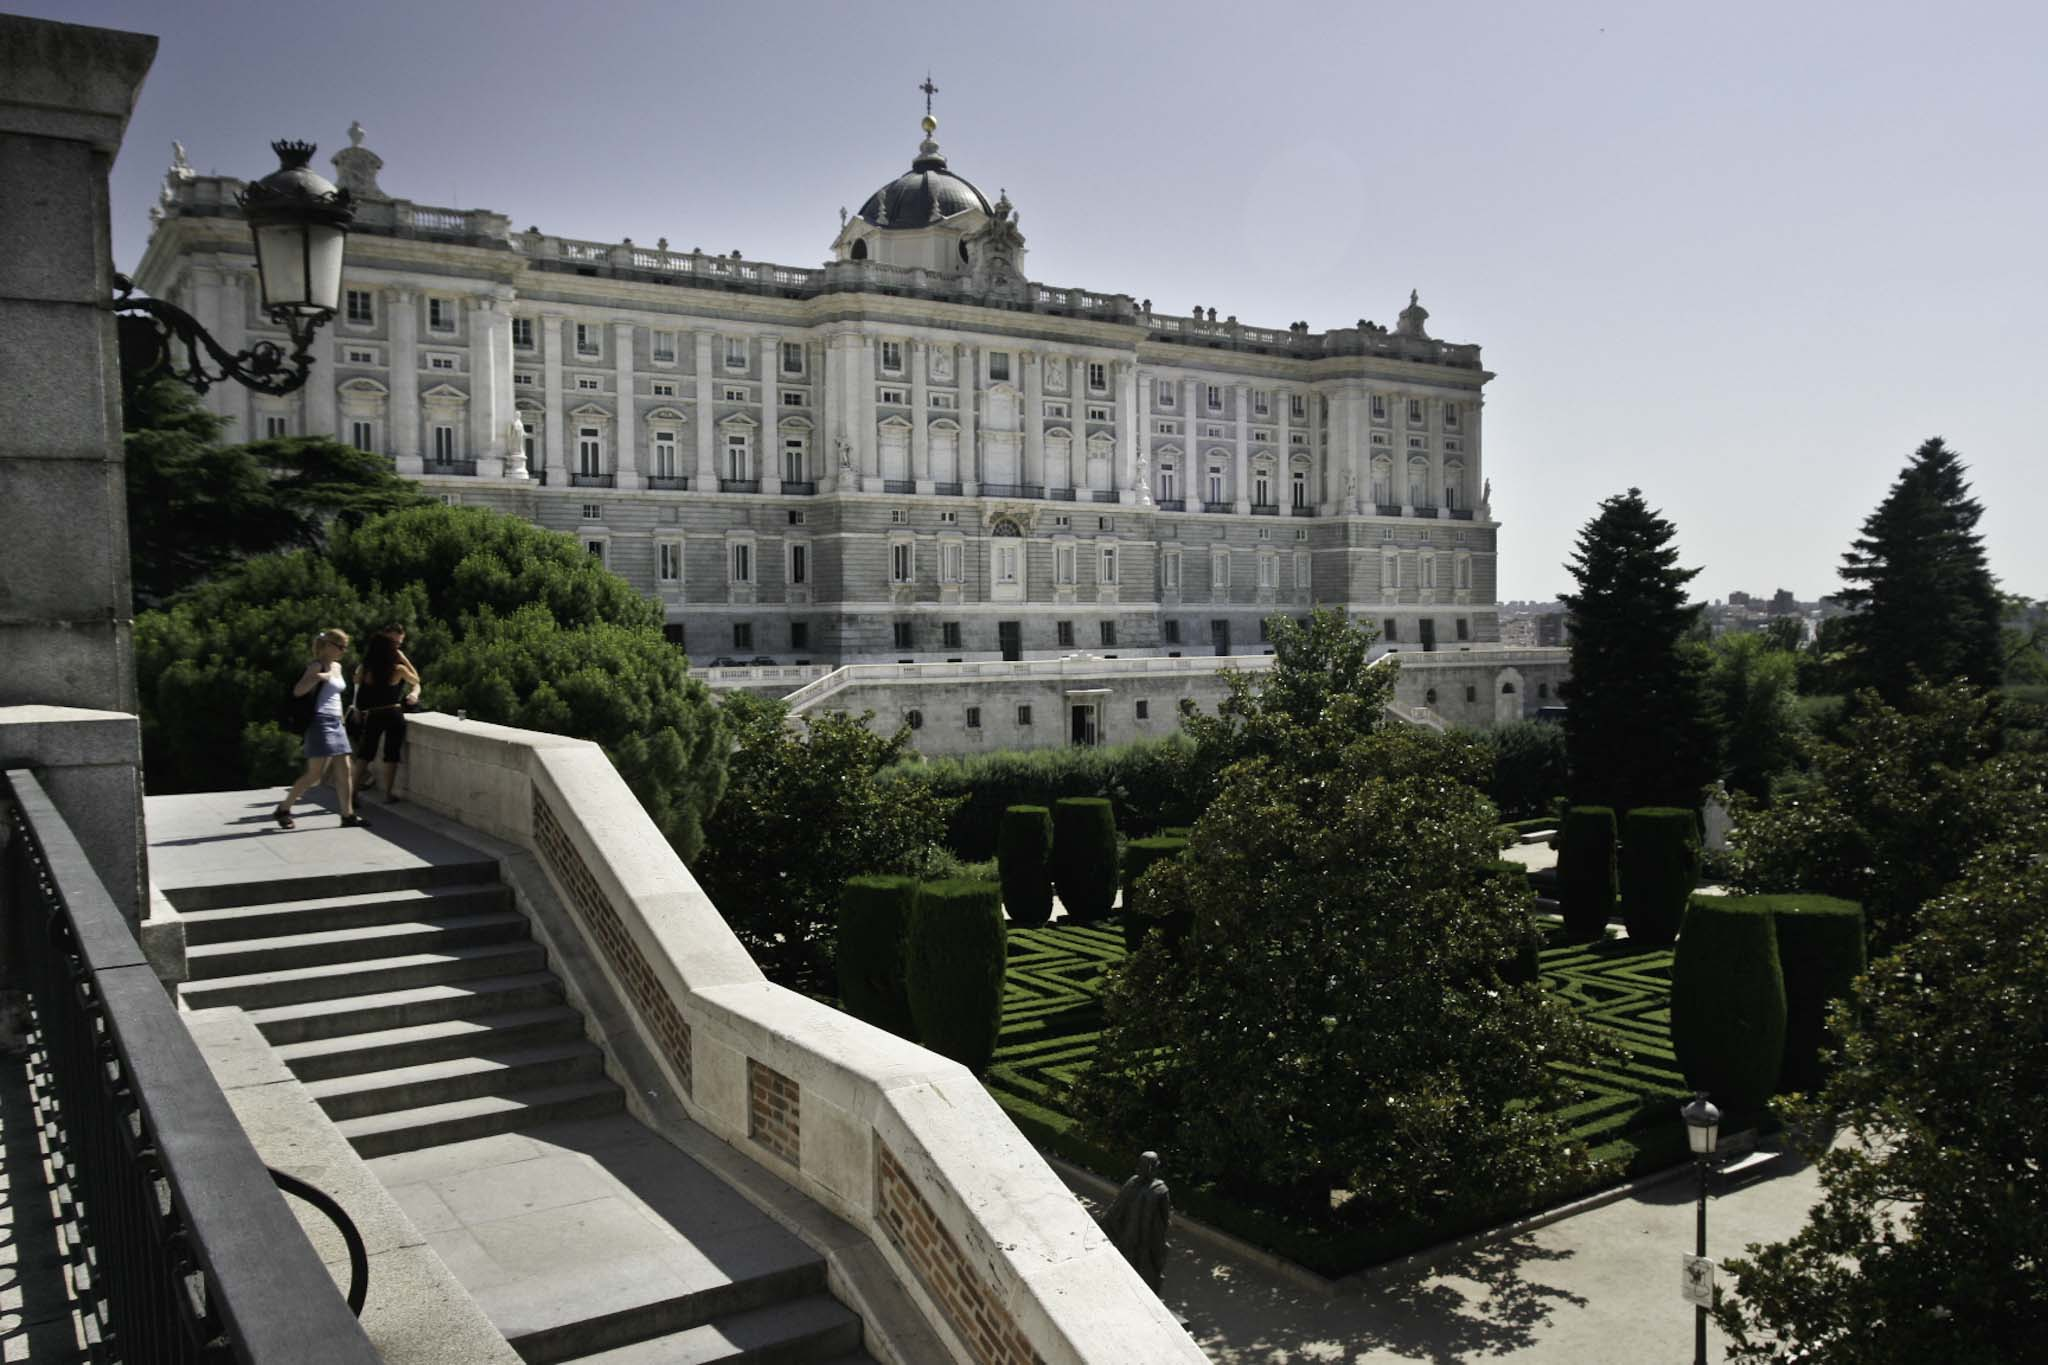 Palacio real koninklijk paleis madrid for Jardines de sabatini